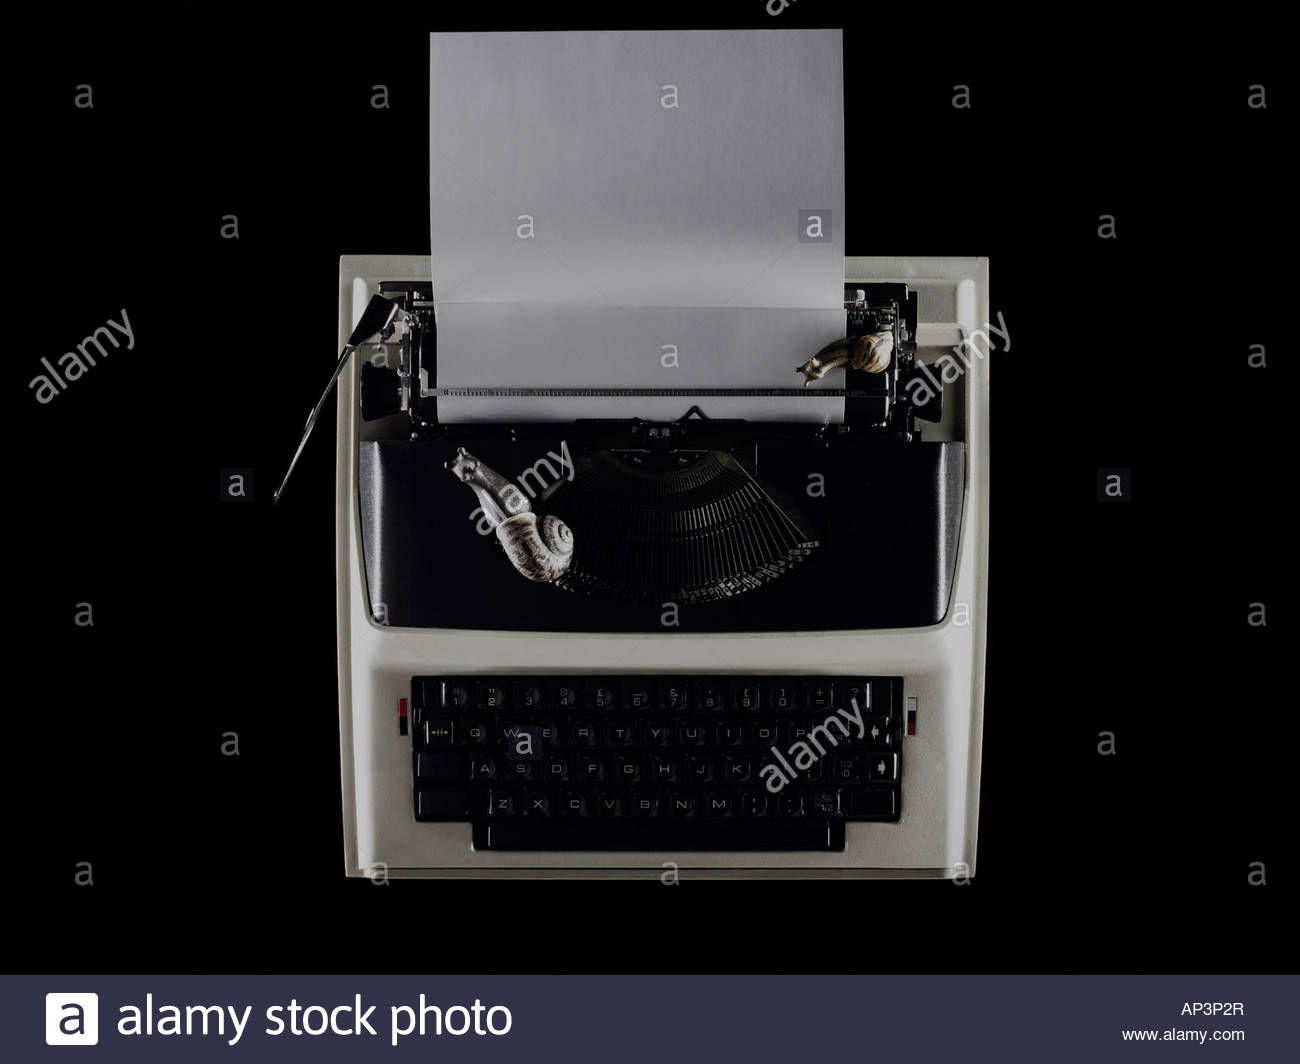 Snails on a typewriter - Stock Image